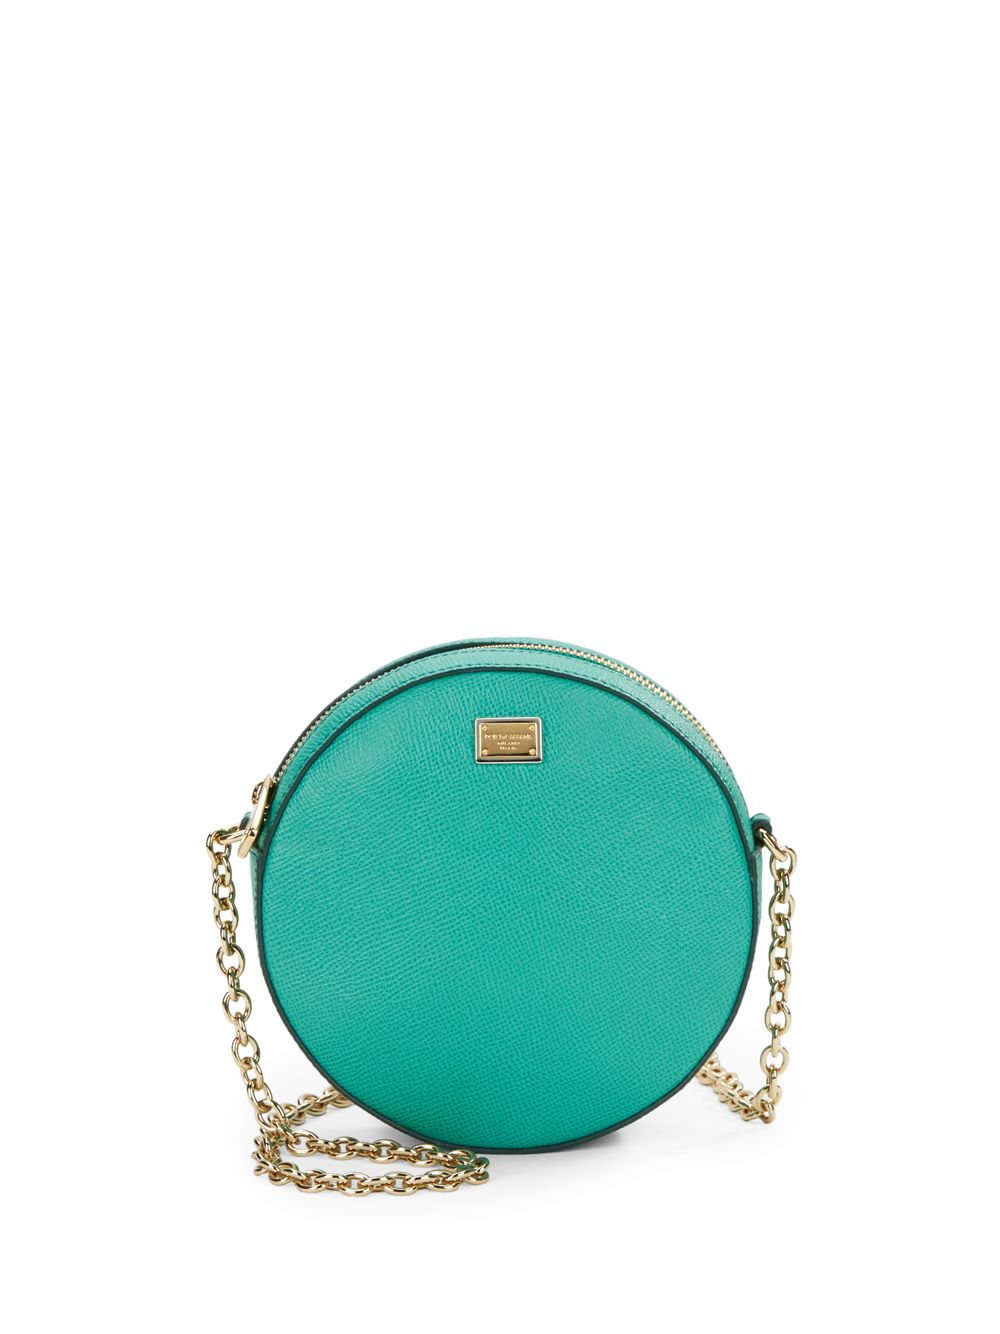 Lyst - Dolce   Gabbana Round Glam Textured Leather Mini Bag in Green 7efa64e283326